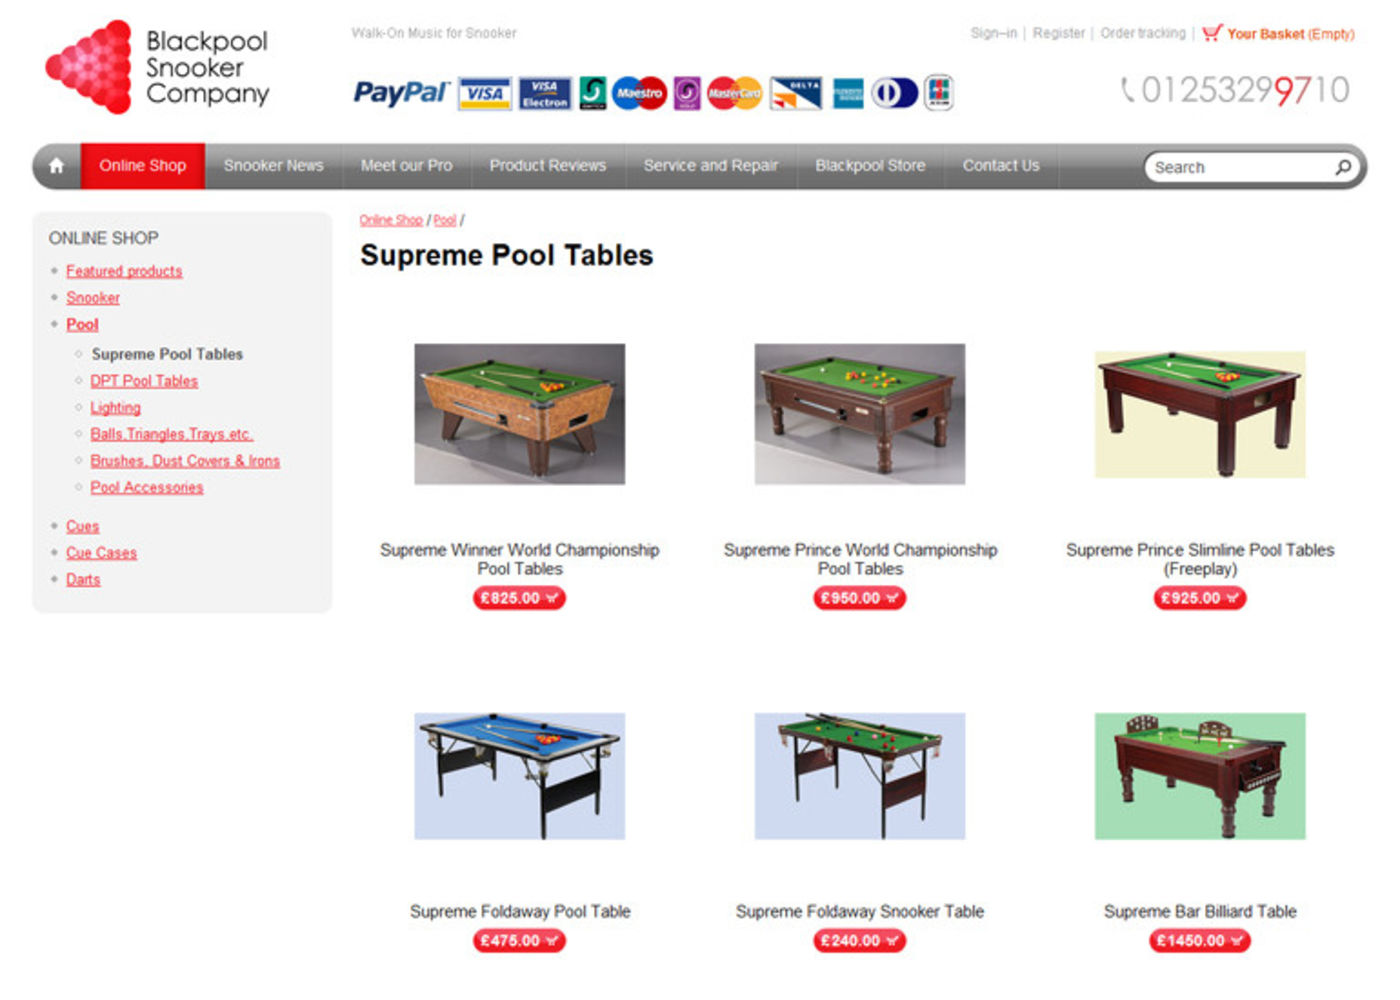 Blackpool Snooker Company Online shop